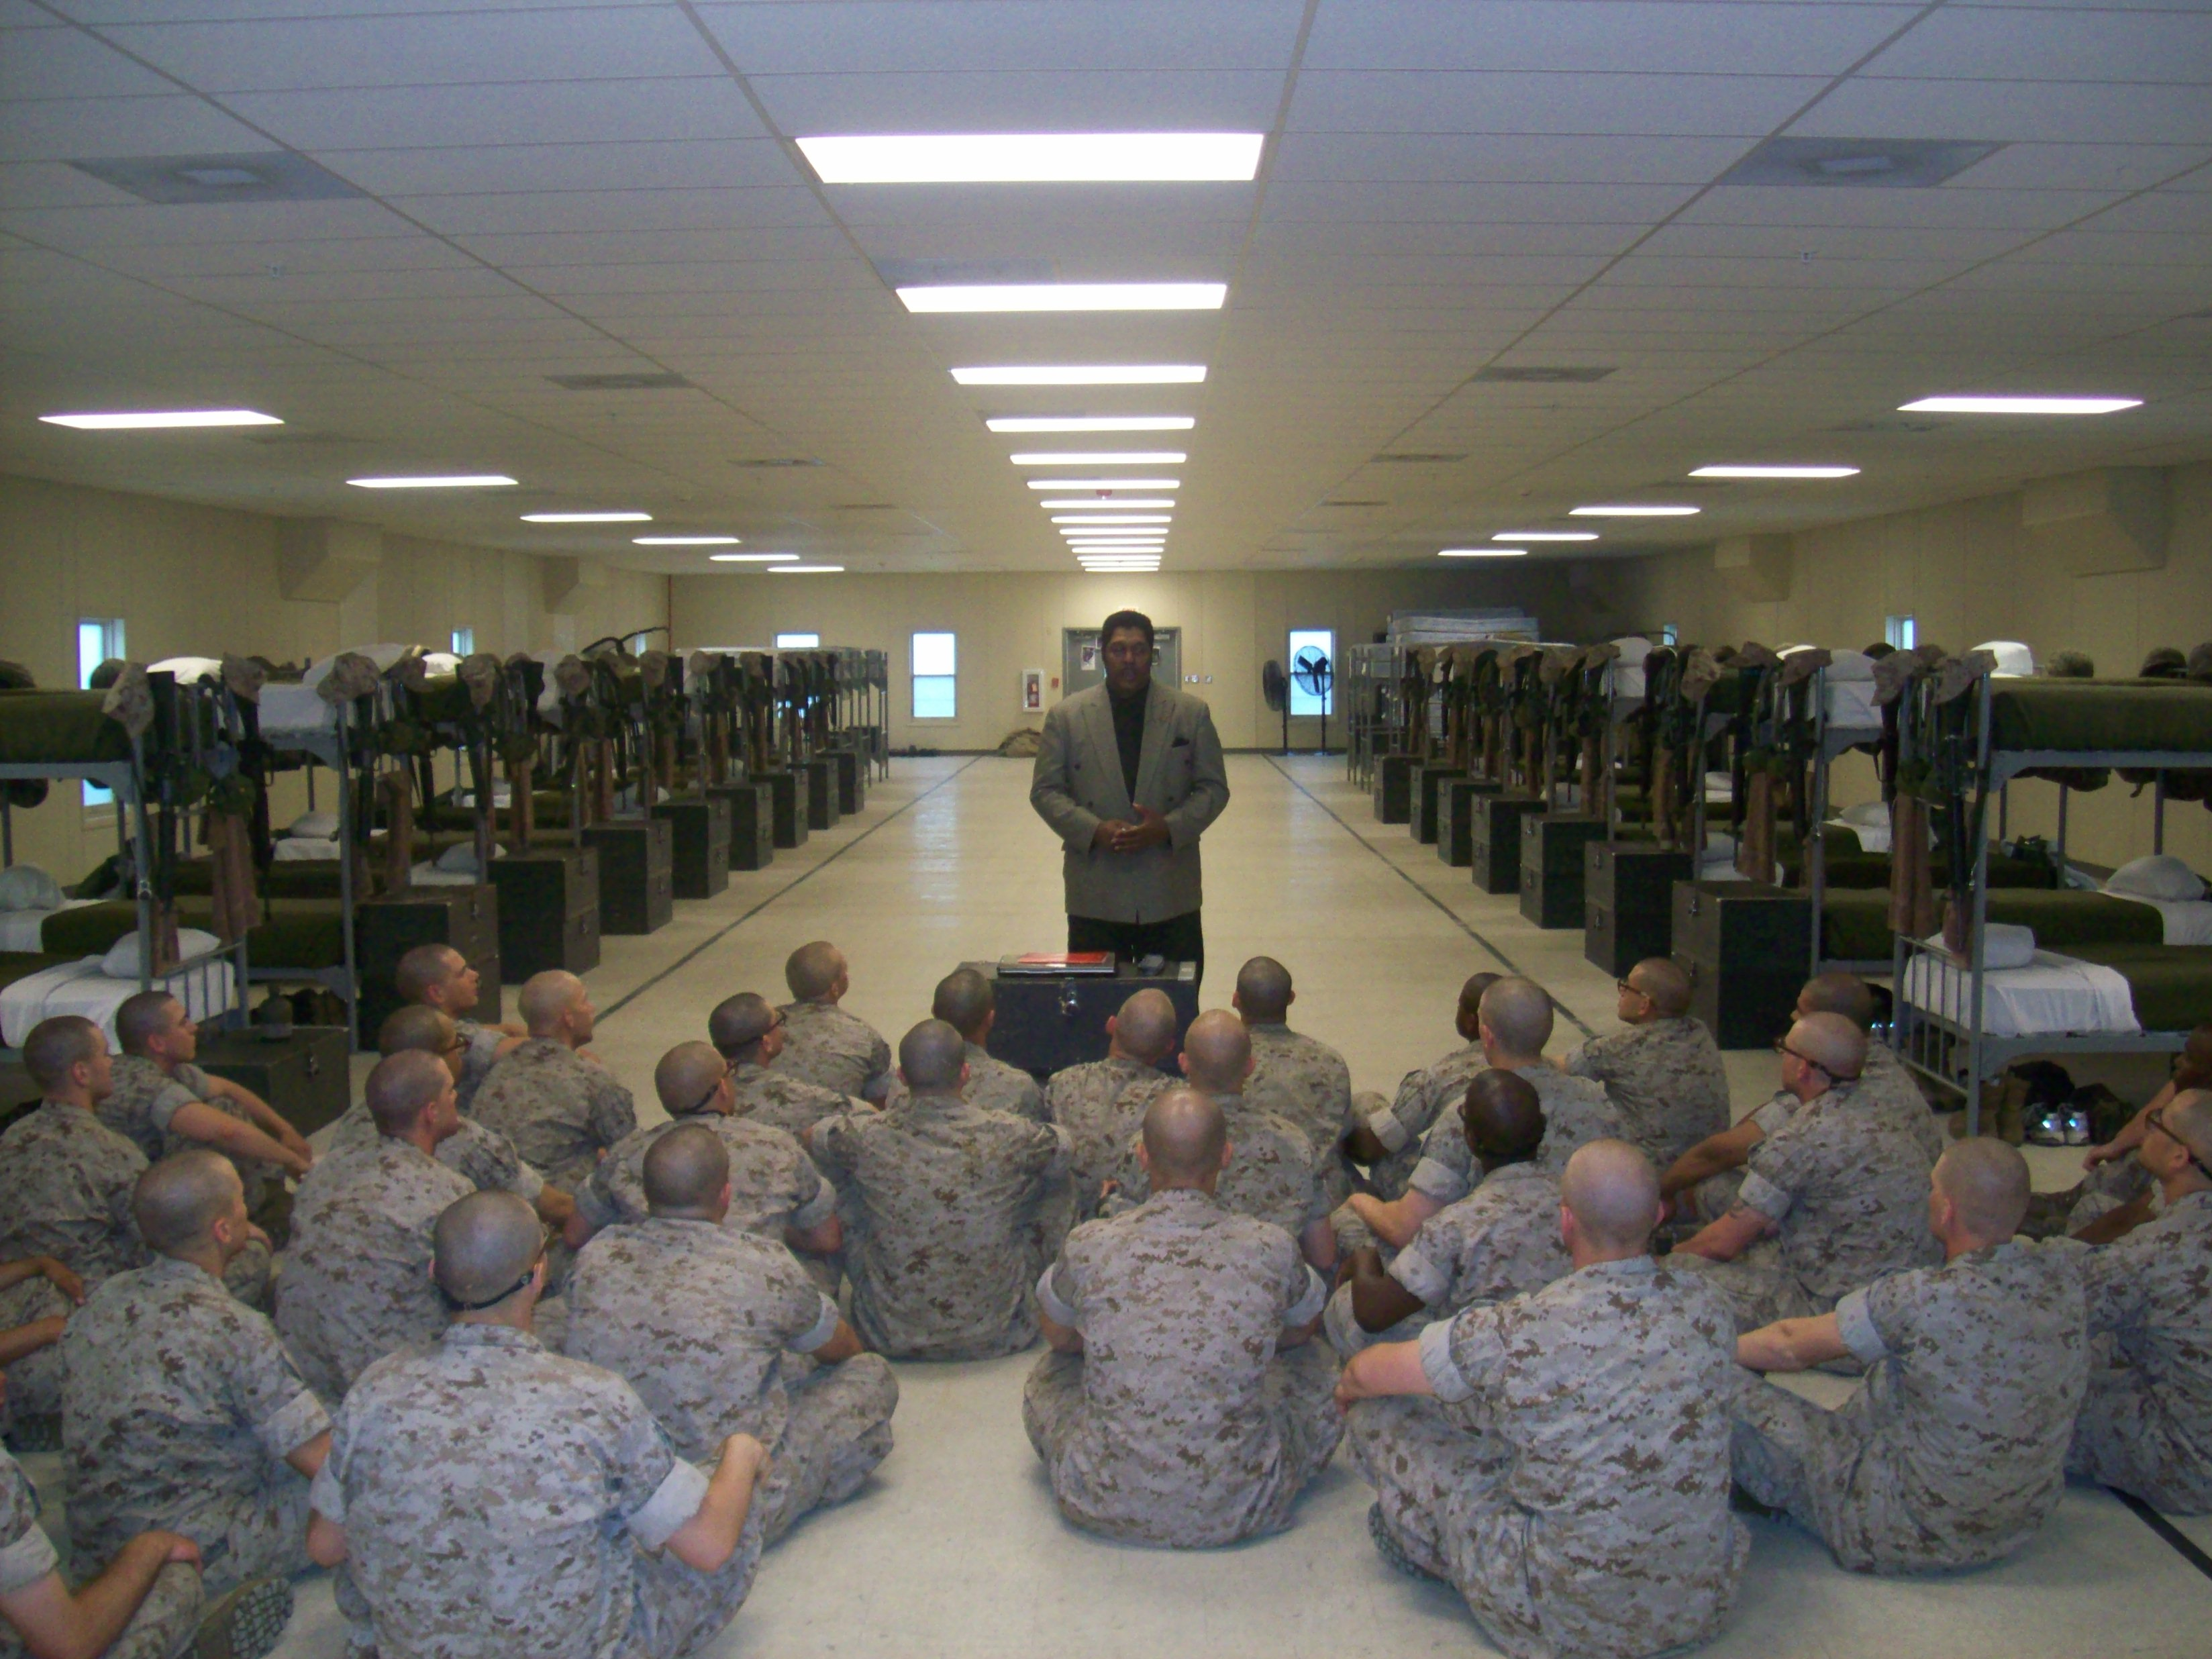 SSgt Leslie Little (Lifer) - Based on your own experiences, what advice would you give to those who have recently joined the Marine Corps?